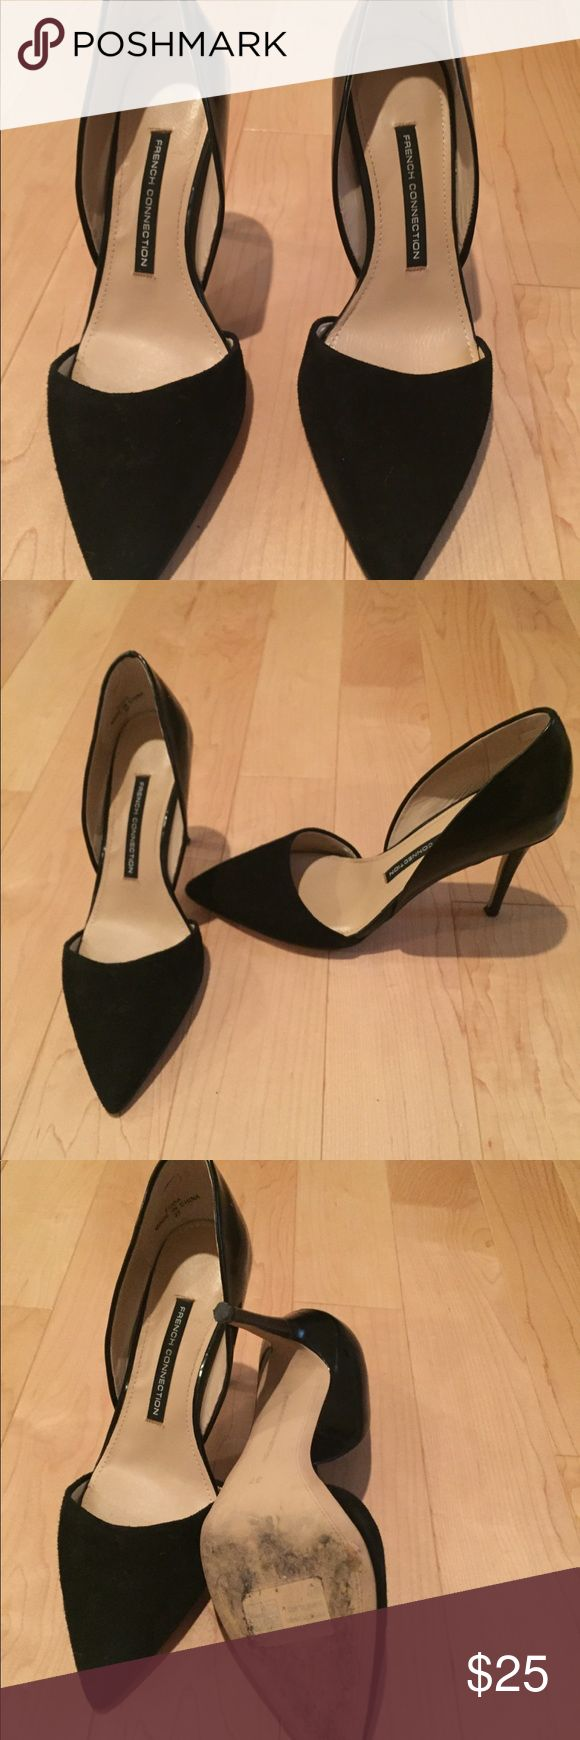 French Connection black suede and leather heels. French Connection black suede and leather heels. Like new, worn twice. Size 37. Top of shoe is suede and back and heel is leather. Great shoe, just too tall for me. Only thing a little worn is the front sole. French Connection Shoes Heels